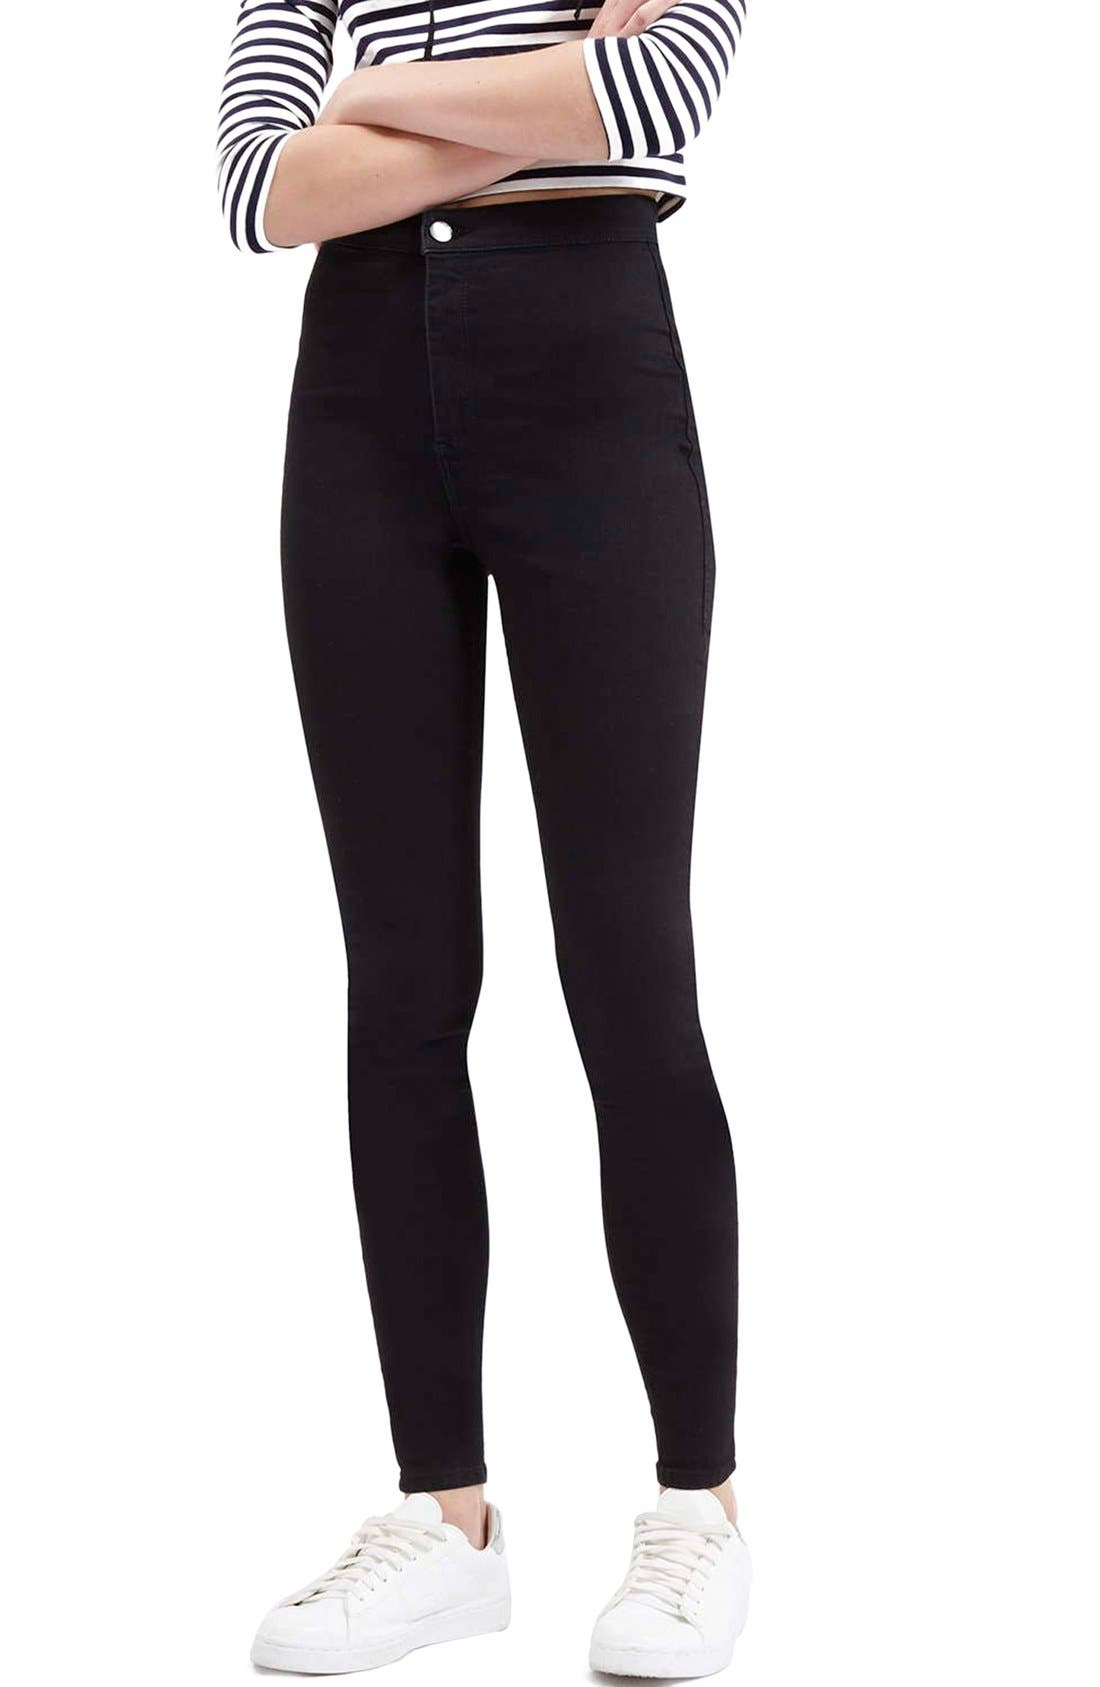 Moto 'Joni' High Rise Skinny Jeans,                             Main thumbnail 1, color,                             001